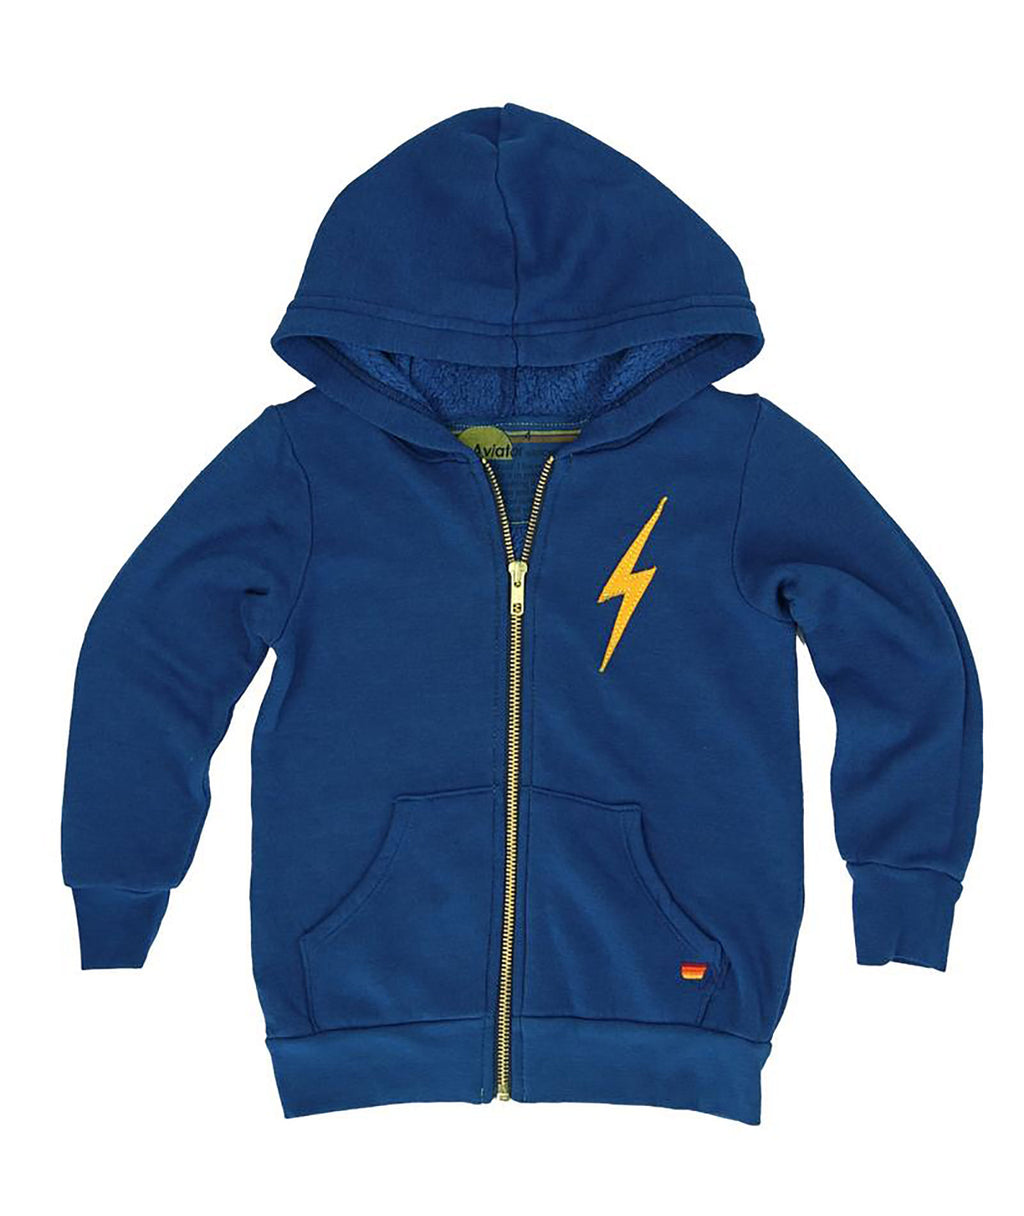 Aviator Nation Girls Royal Blue Bolt Sweatshirt